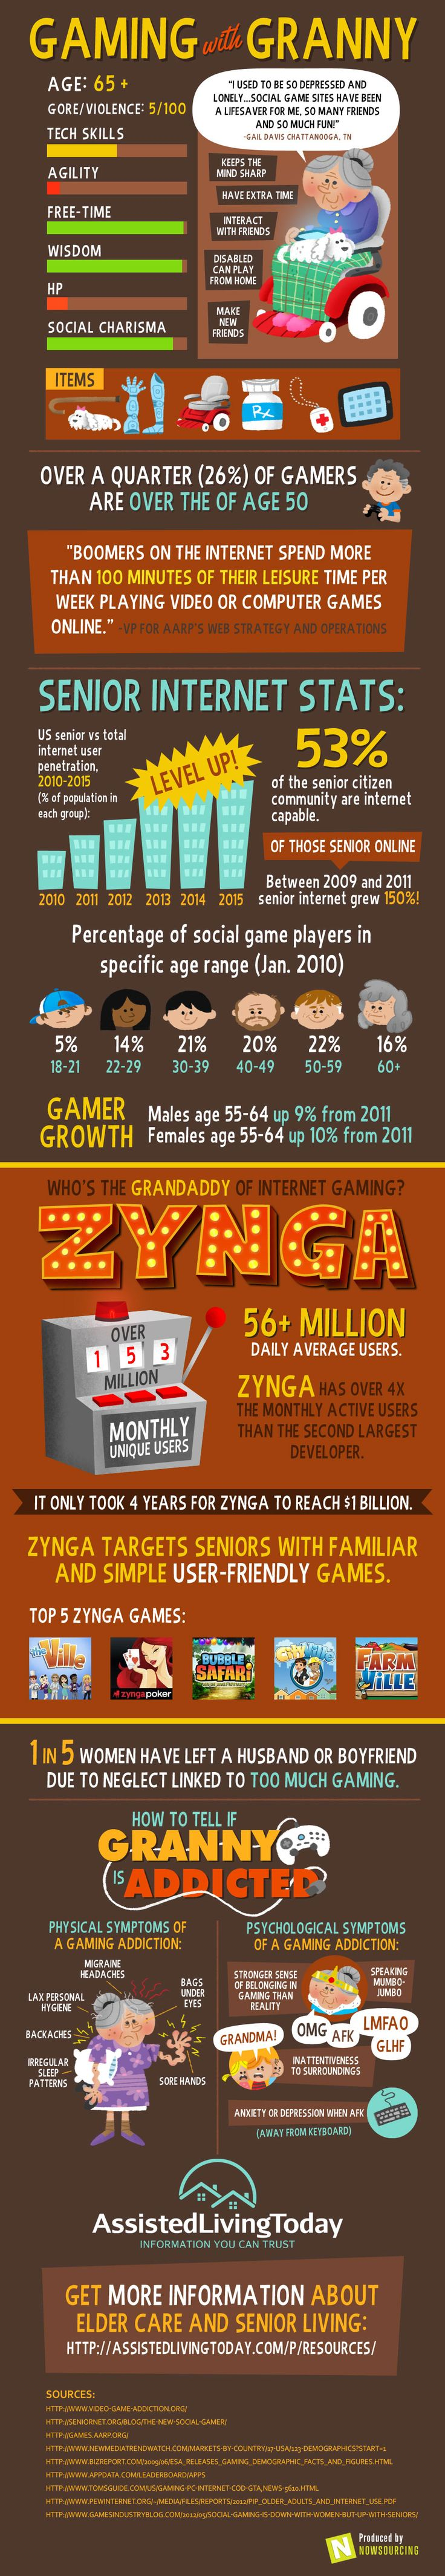 About #gamification here is a surprise! #gamers are not who you think...